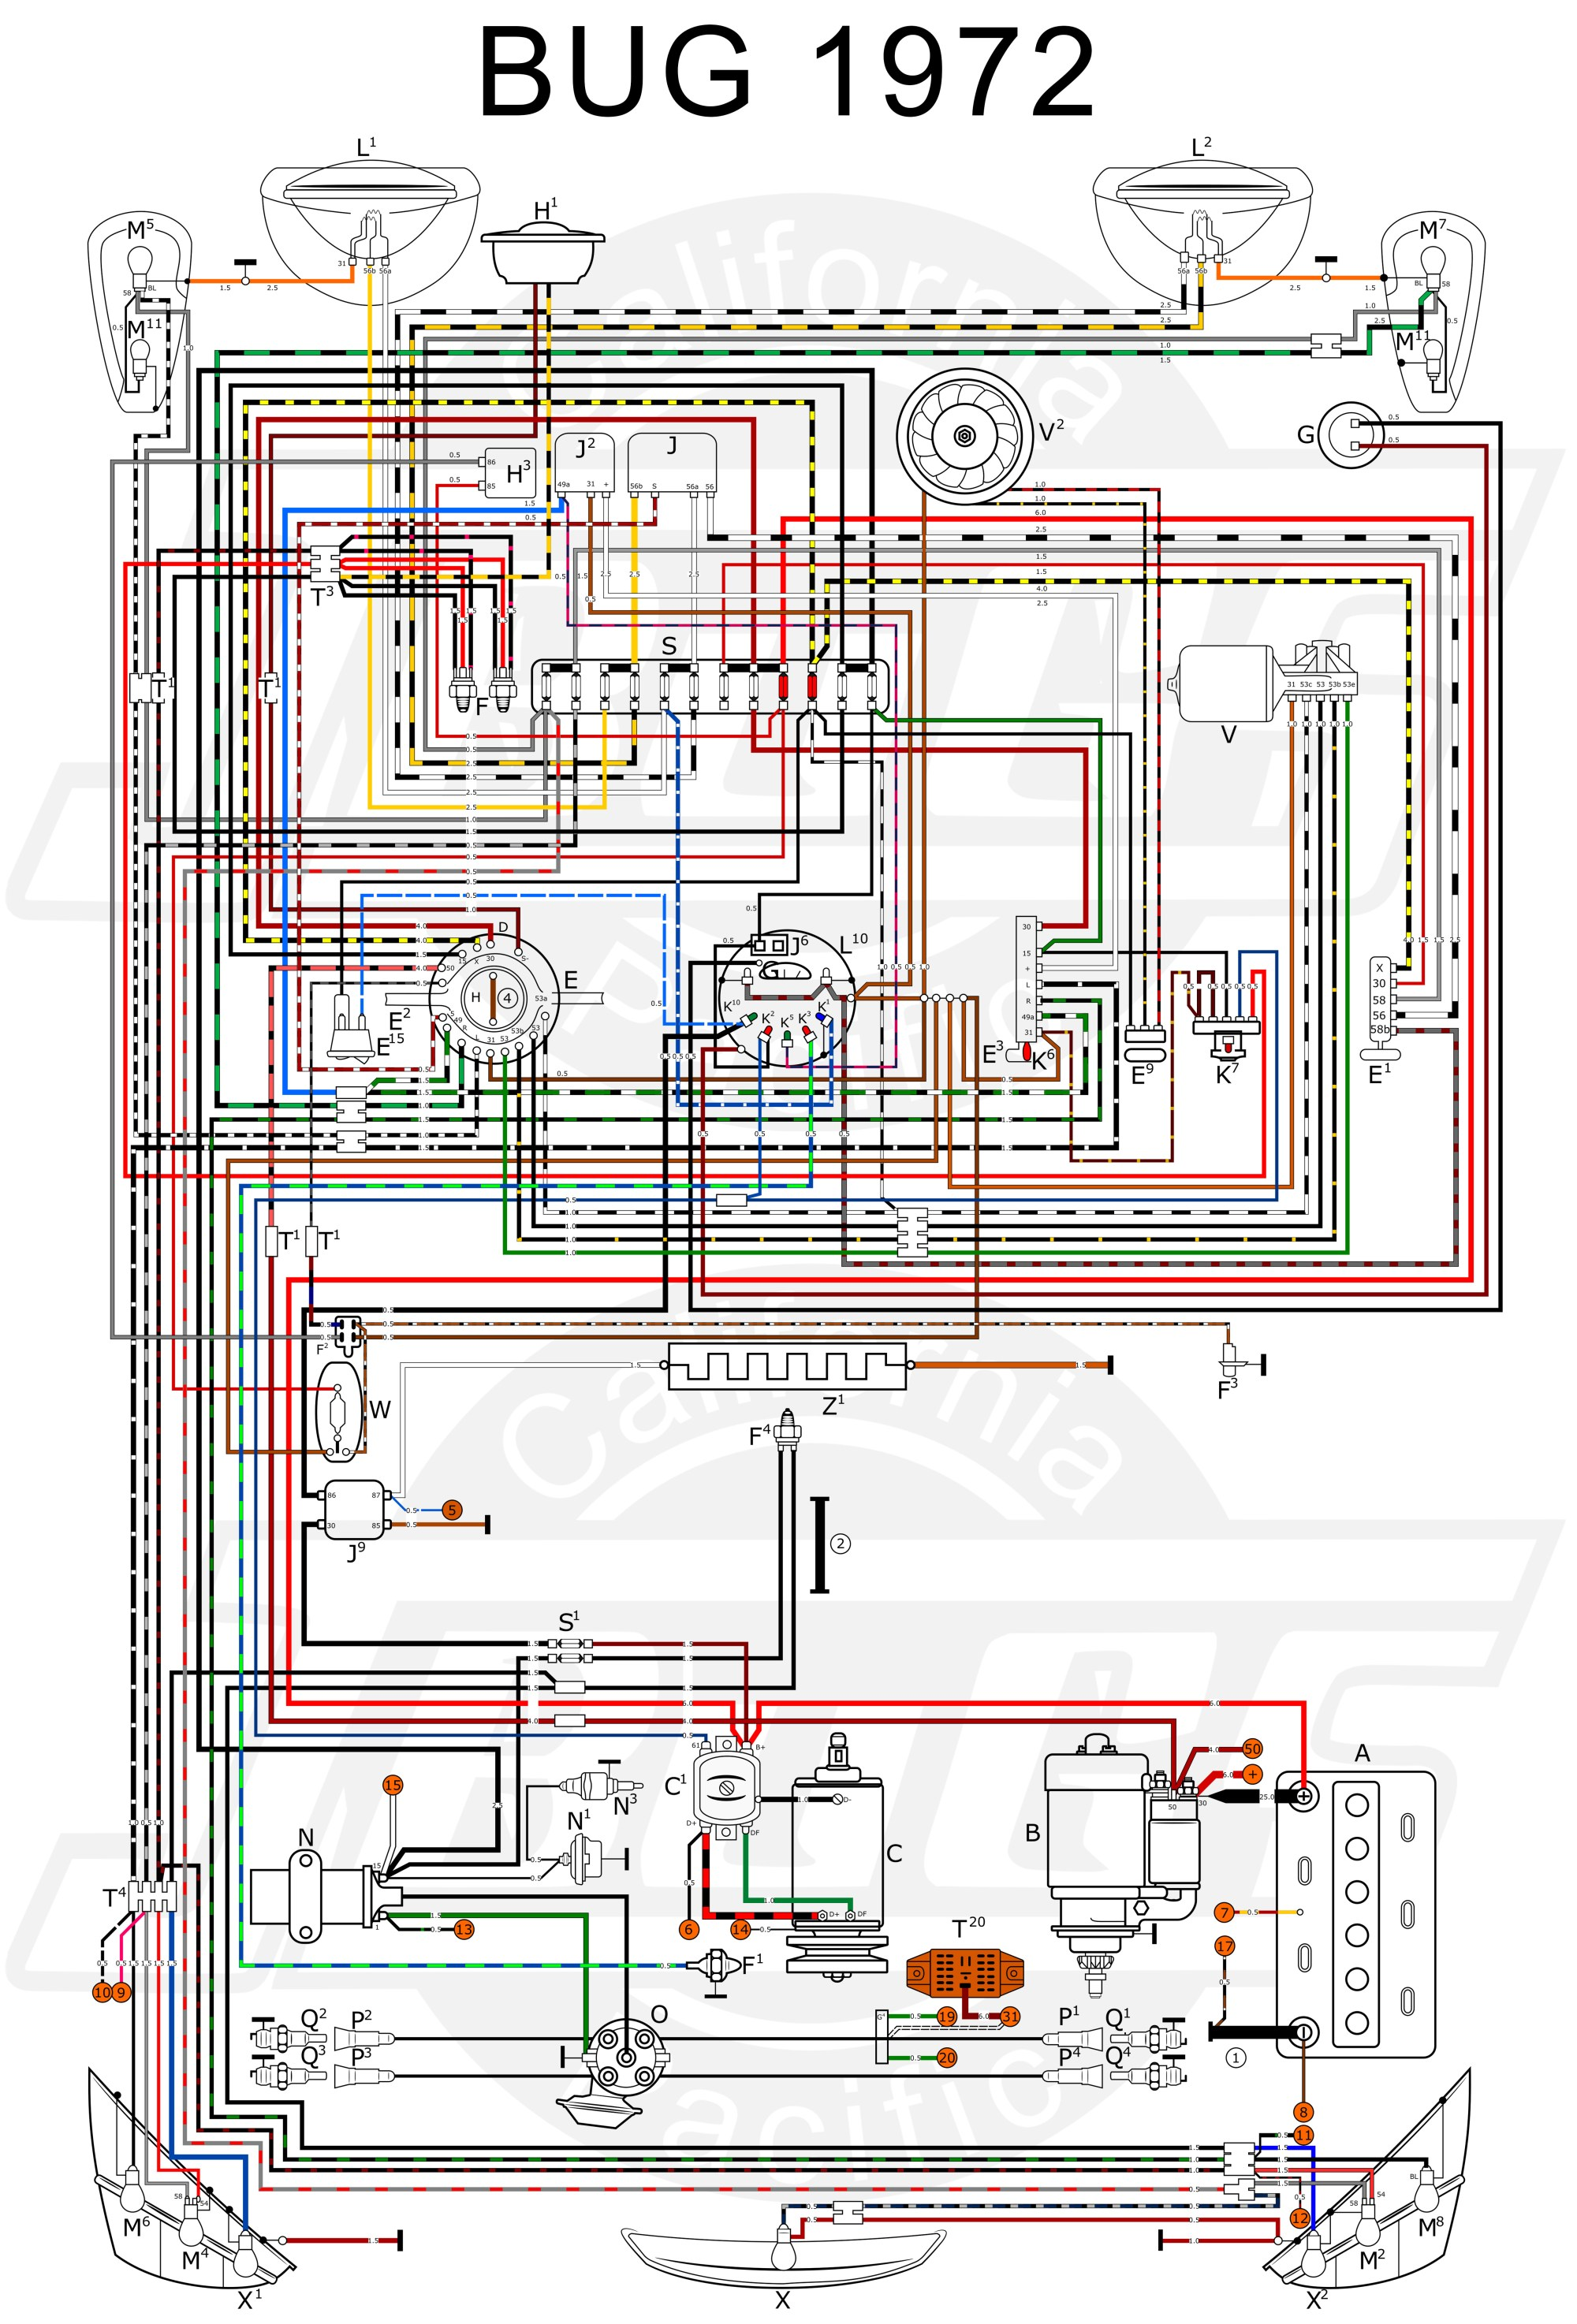 hight resolution of 1972 vw wiring diagram electrical wiring diagram house u2022 rh universalservices co 1966 vw beetle wiring